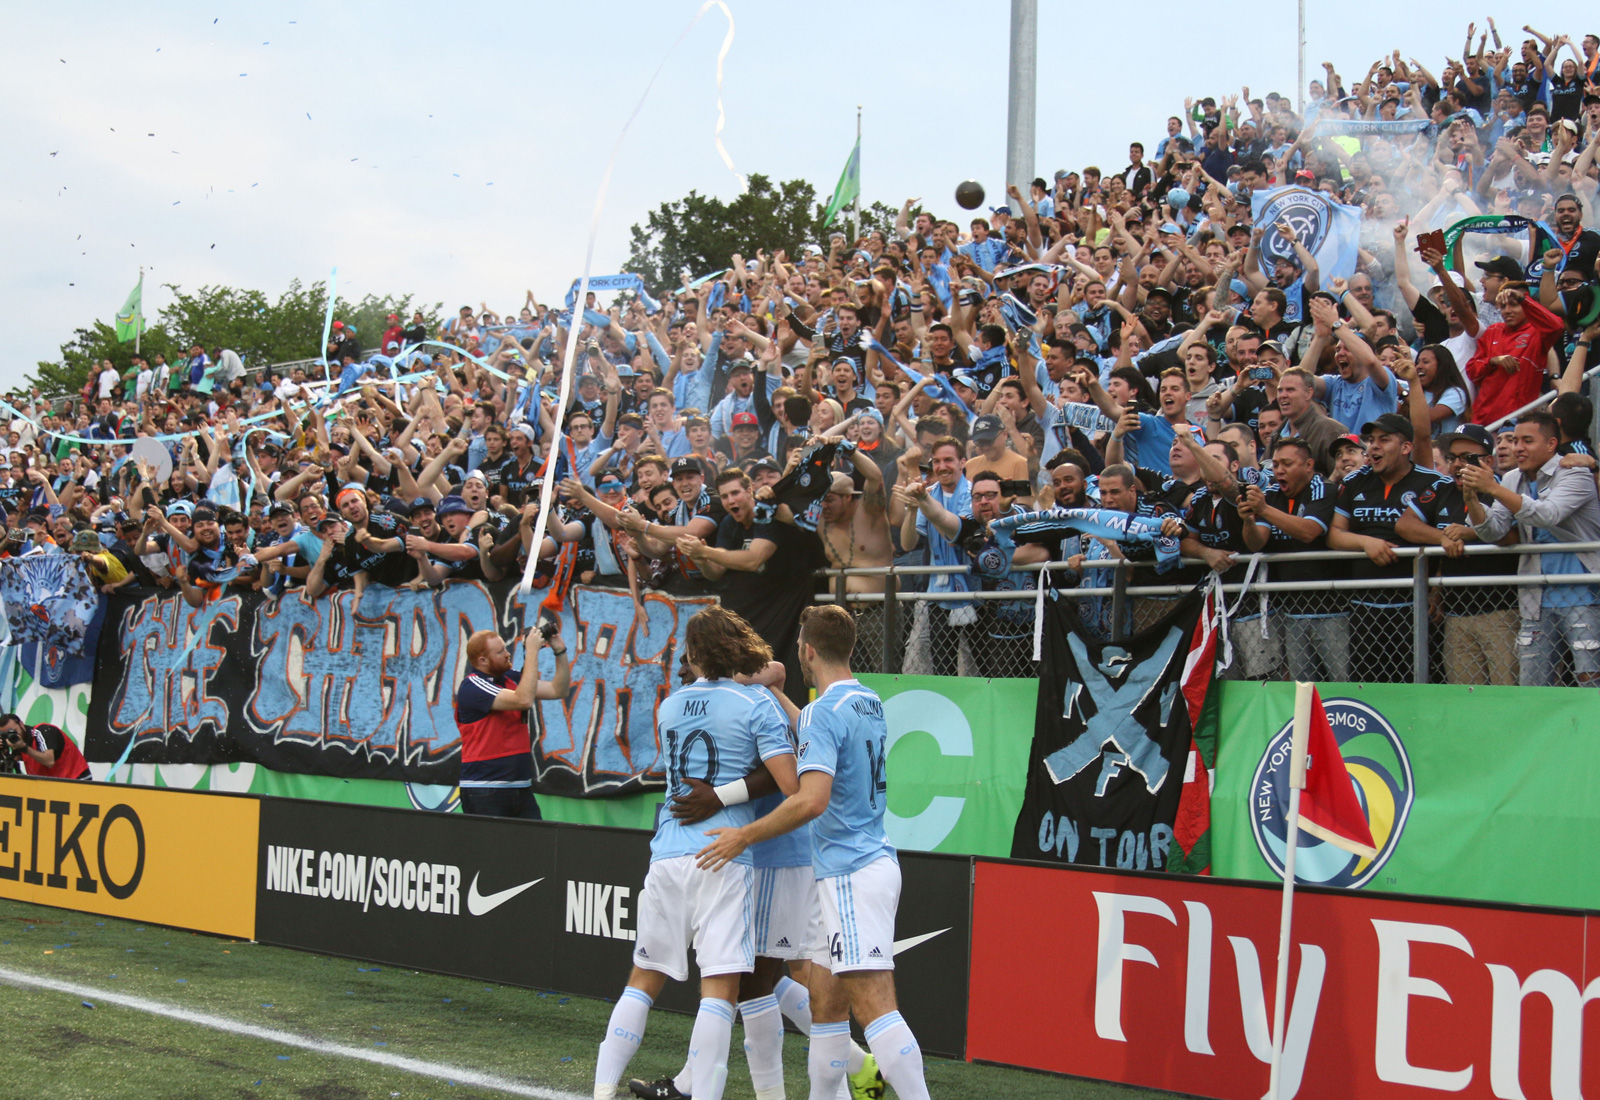 NYCFC midfielder Mix Diskerud (10) and the NYCFC supporters join forward Patrick Mullins (14) in celebrating Kwadwo Poku's (88) opening goal against the New York Cosmos.